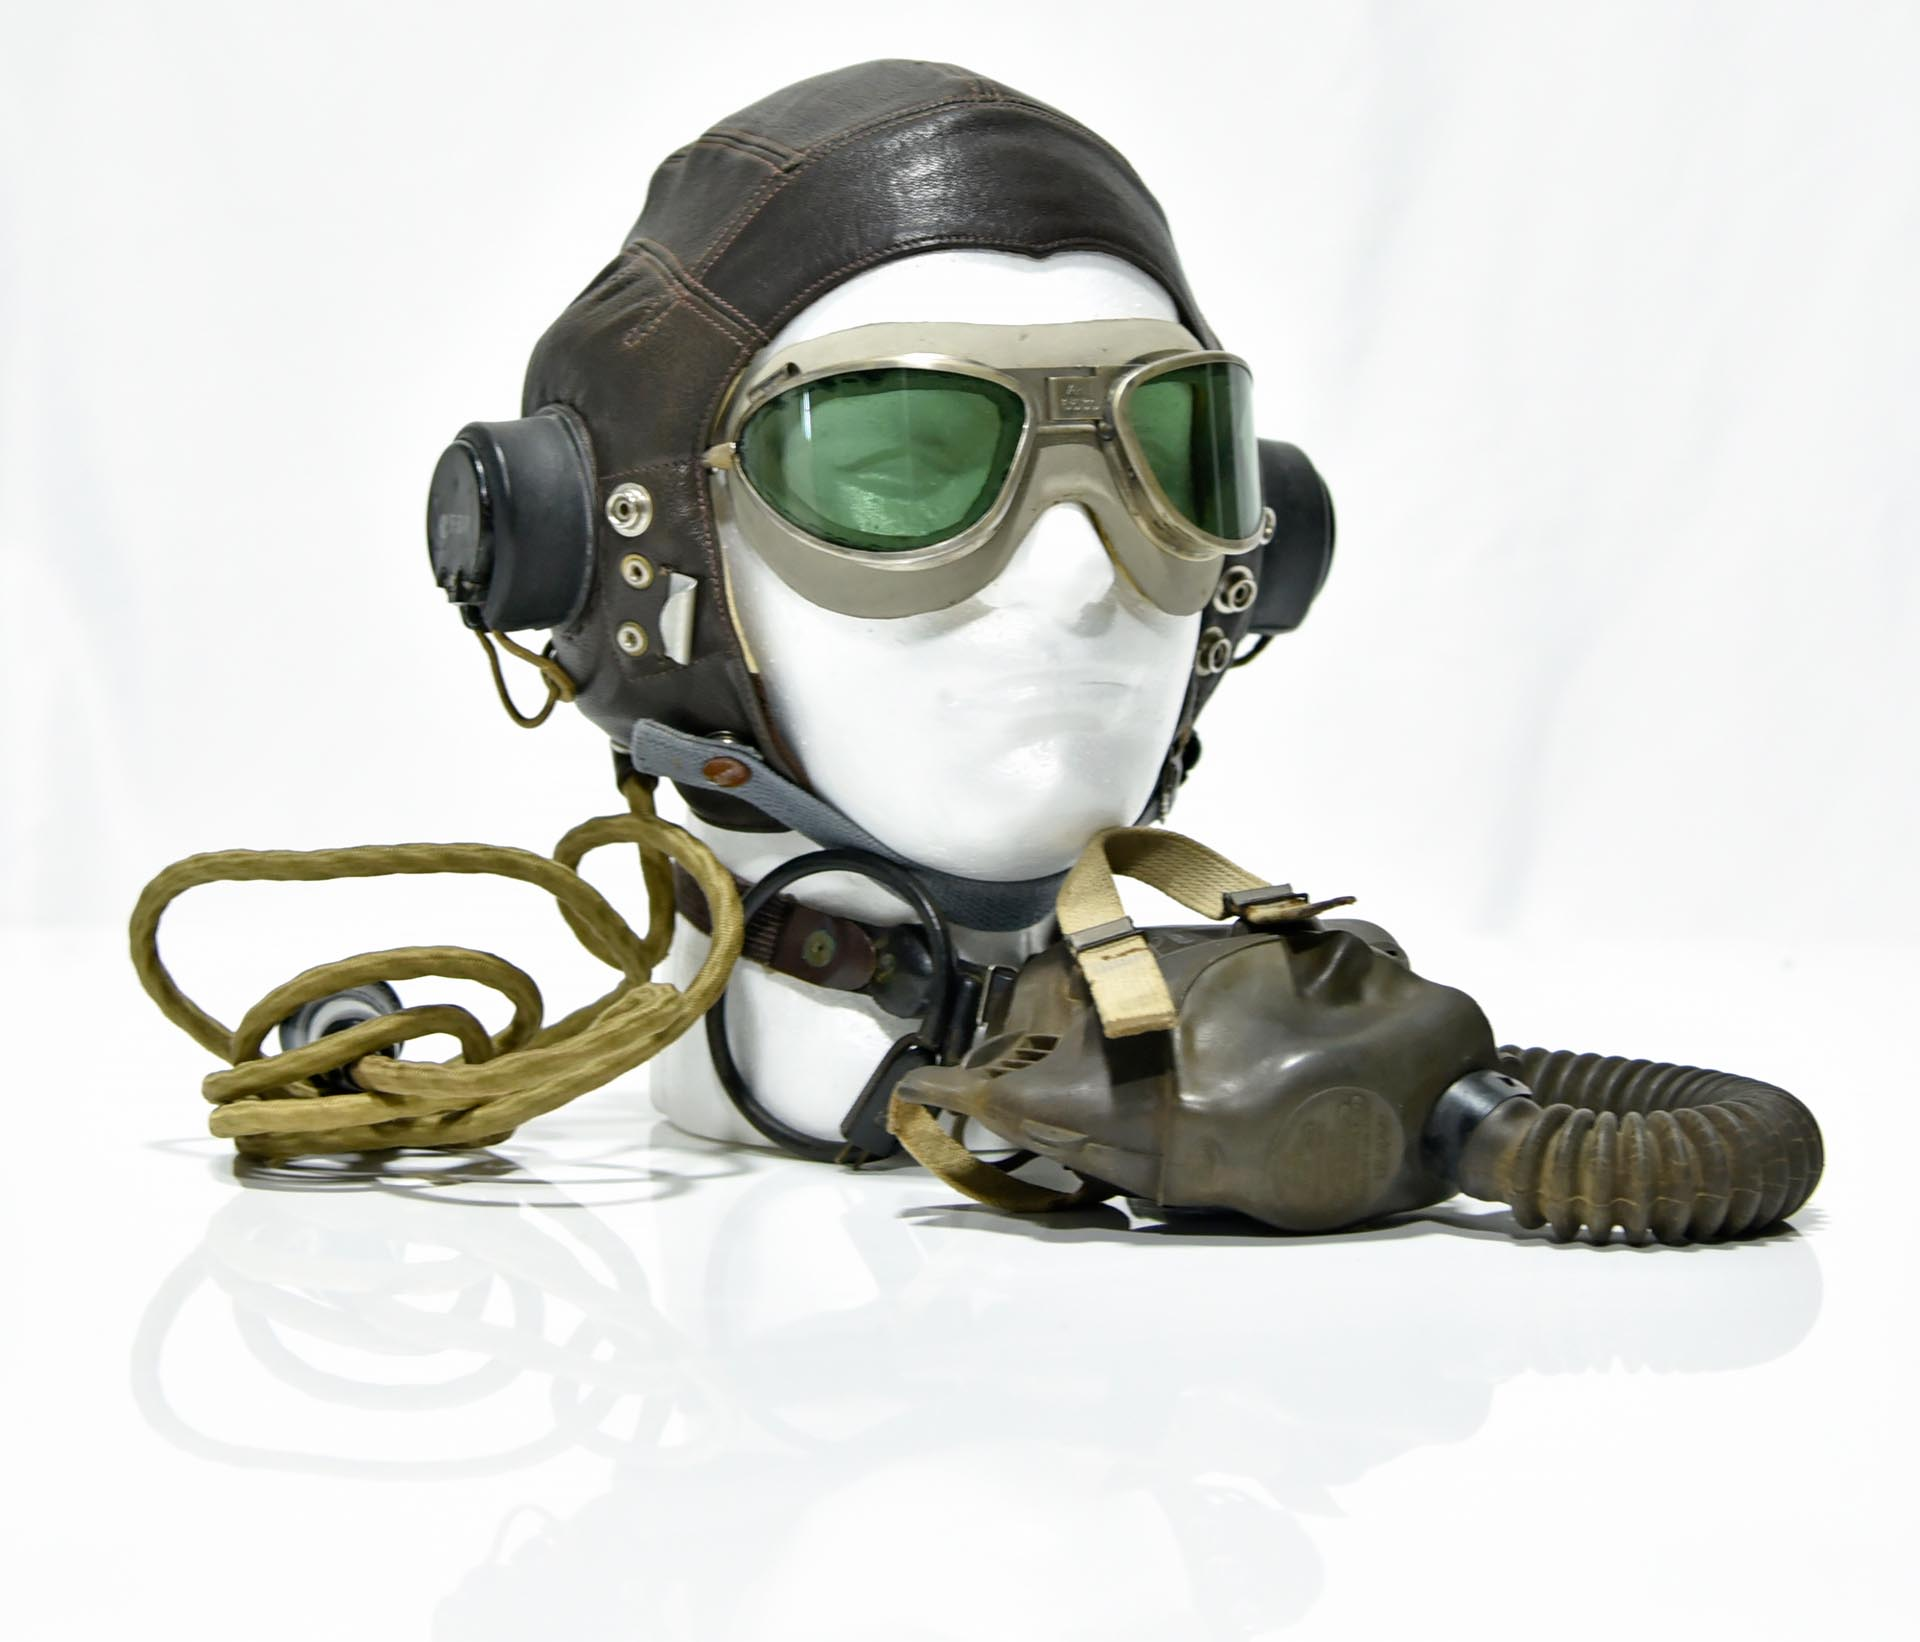 Collection Lot of WWII U.S. Army Air Force Leather Helmet with Headphones, Goggles and Oxygen Mask